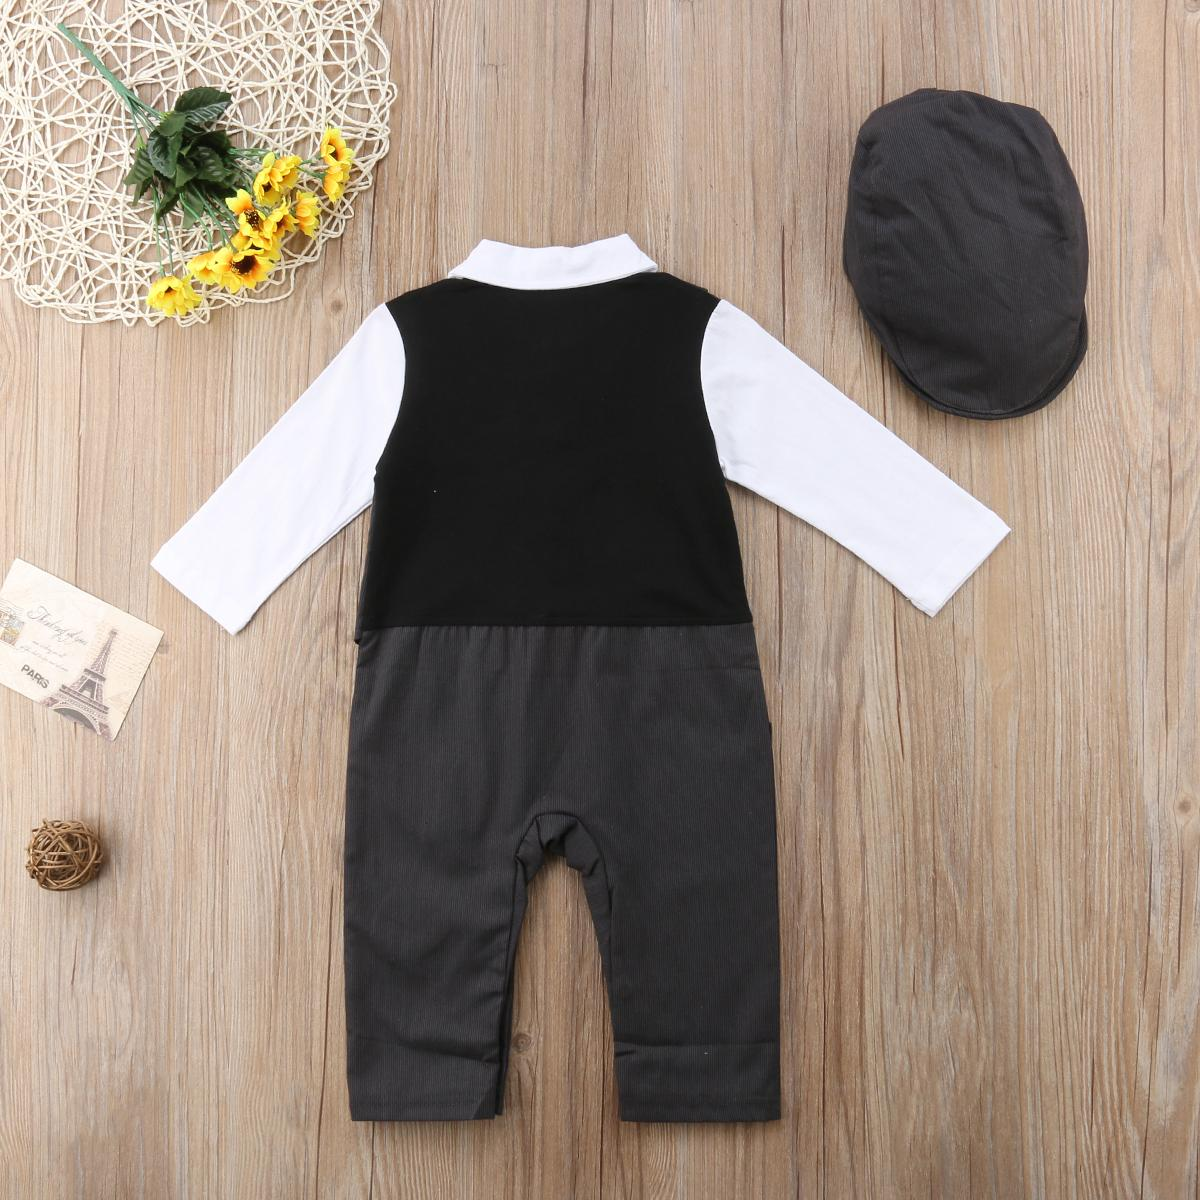 Newly Toddler Baby Boy Formal Suit Party Wedding Tuxedo Gentleman Double Breasted Romper Jumpsuit +Hats Outfit 0-24M